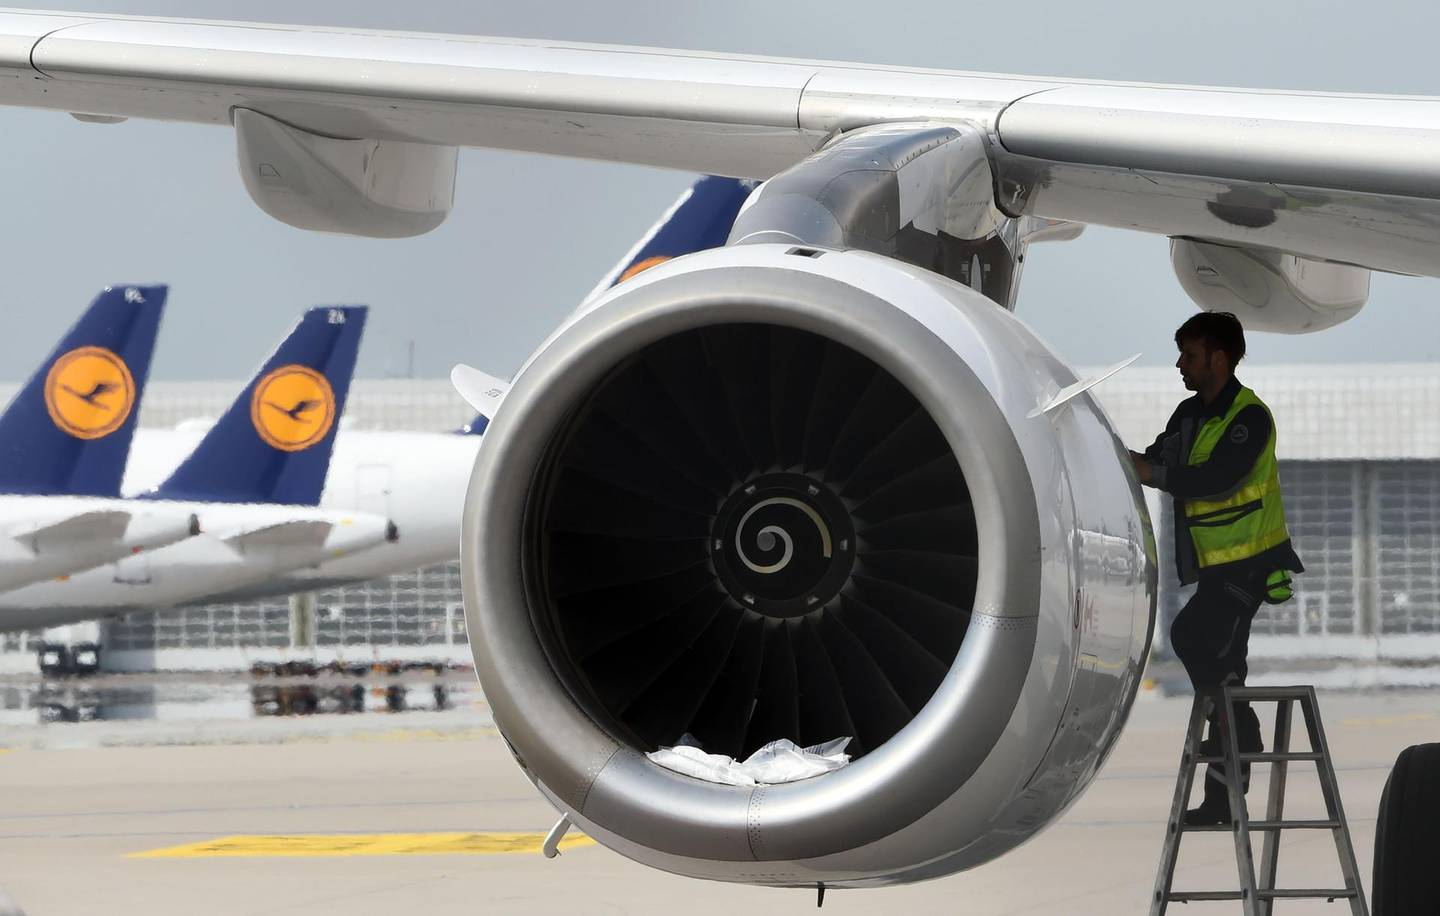 """(FILES) This file photo taken on April 28, 2020 shows a technician of the German airline Lufthansa working at a parked plane at the """"Franz-Josef-Strauss"""" airport in Munich, southern Germany.  German airline Lufthansa is to cut 22,000 jobs due to the effects of the coronavirus pandemic, a spokesman said on June 11, 2020. / AFP / Christof STACHE"""